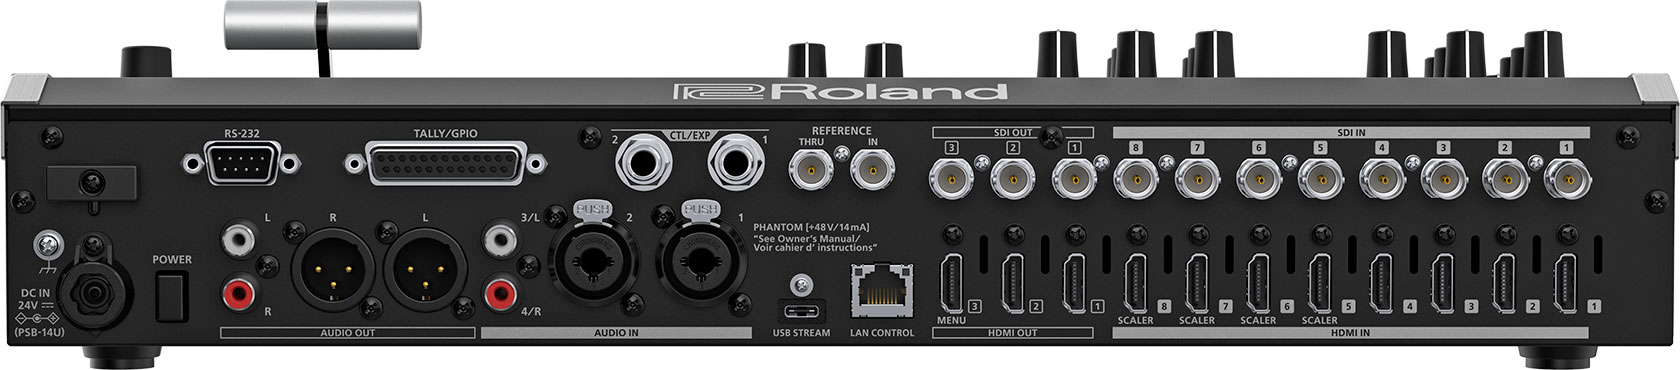 https://static.roland.com/assets/images/products/gallery/v-160hd_rear_gal.jpg